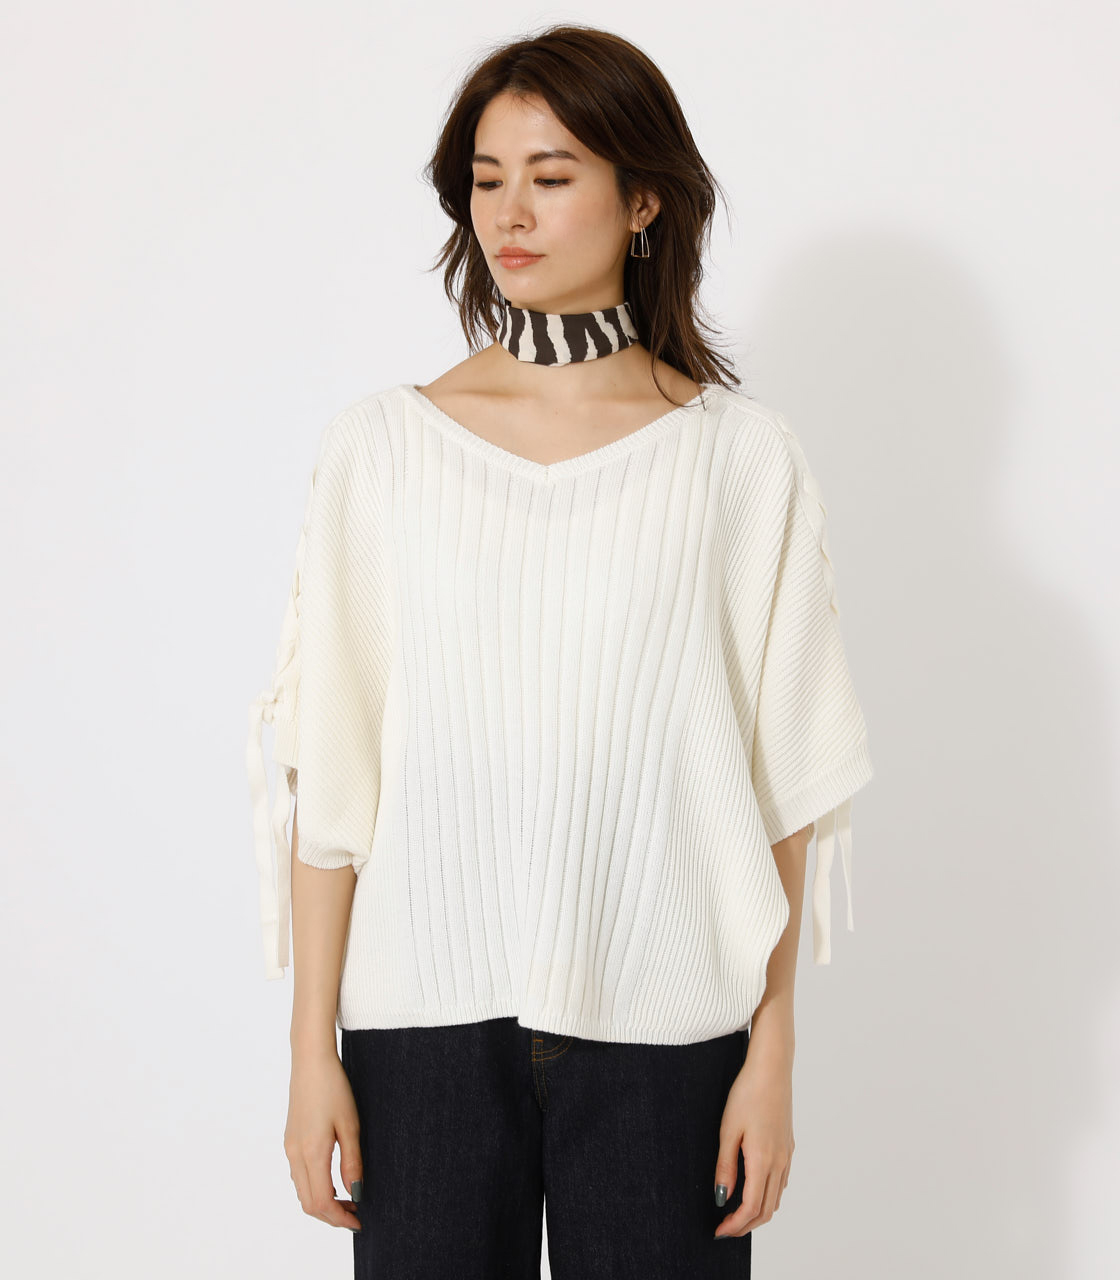 2WAY SHOULDER LACE-UP KNIT/2WAYショルダーレースアップニット 詳細画像 O/WHT 4